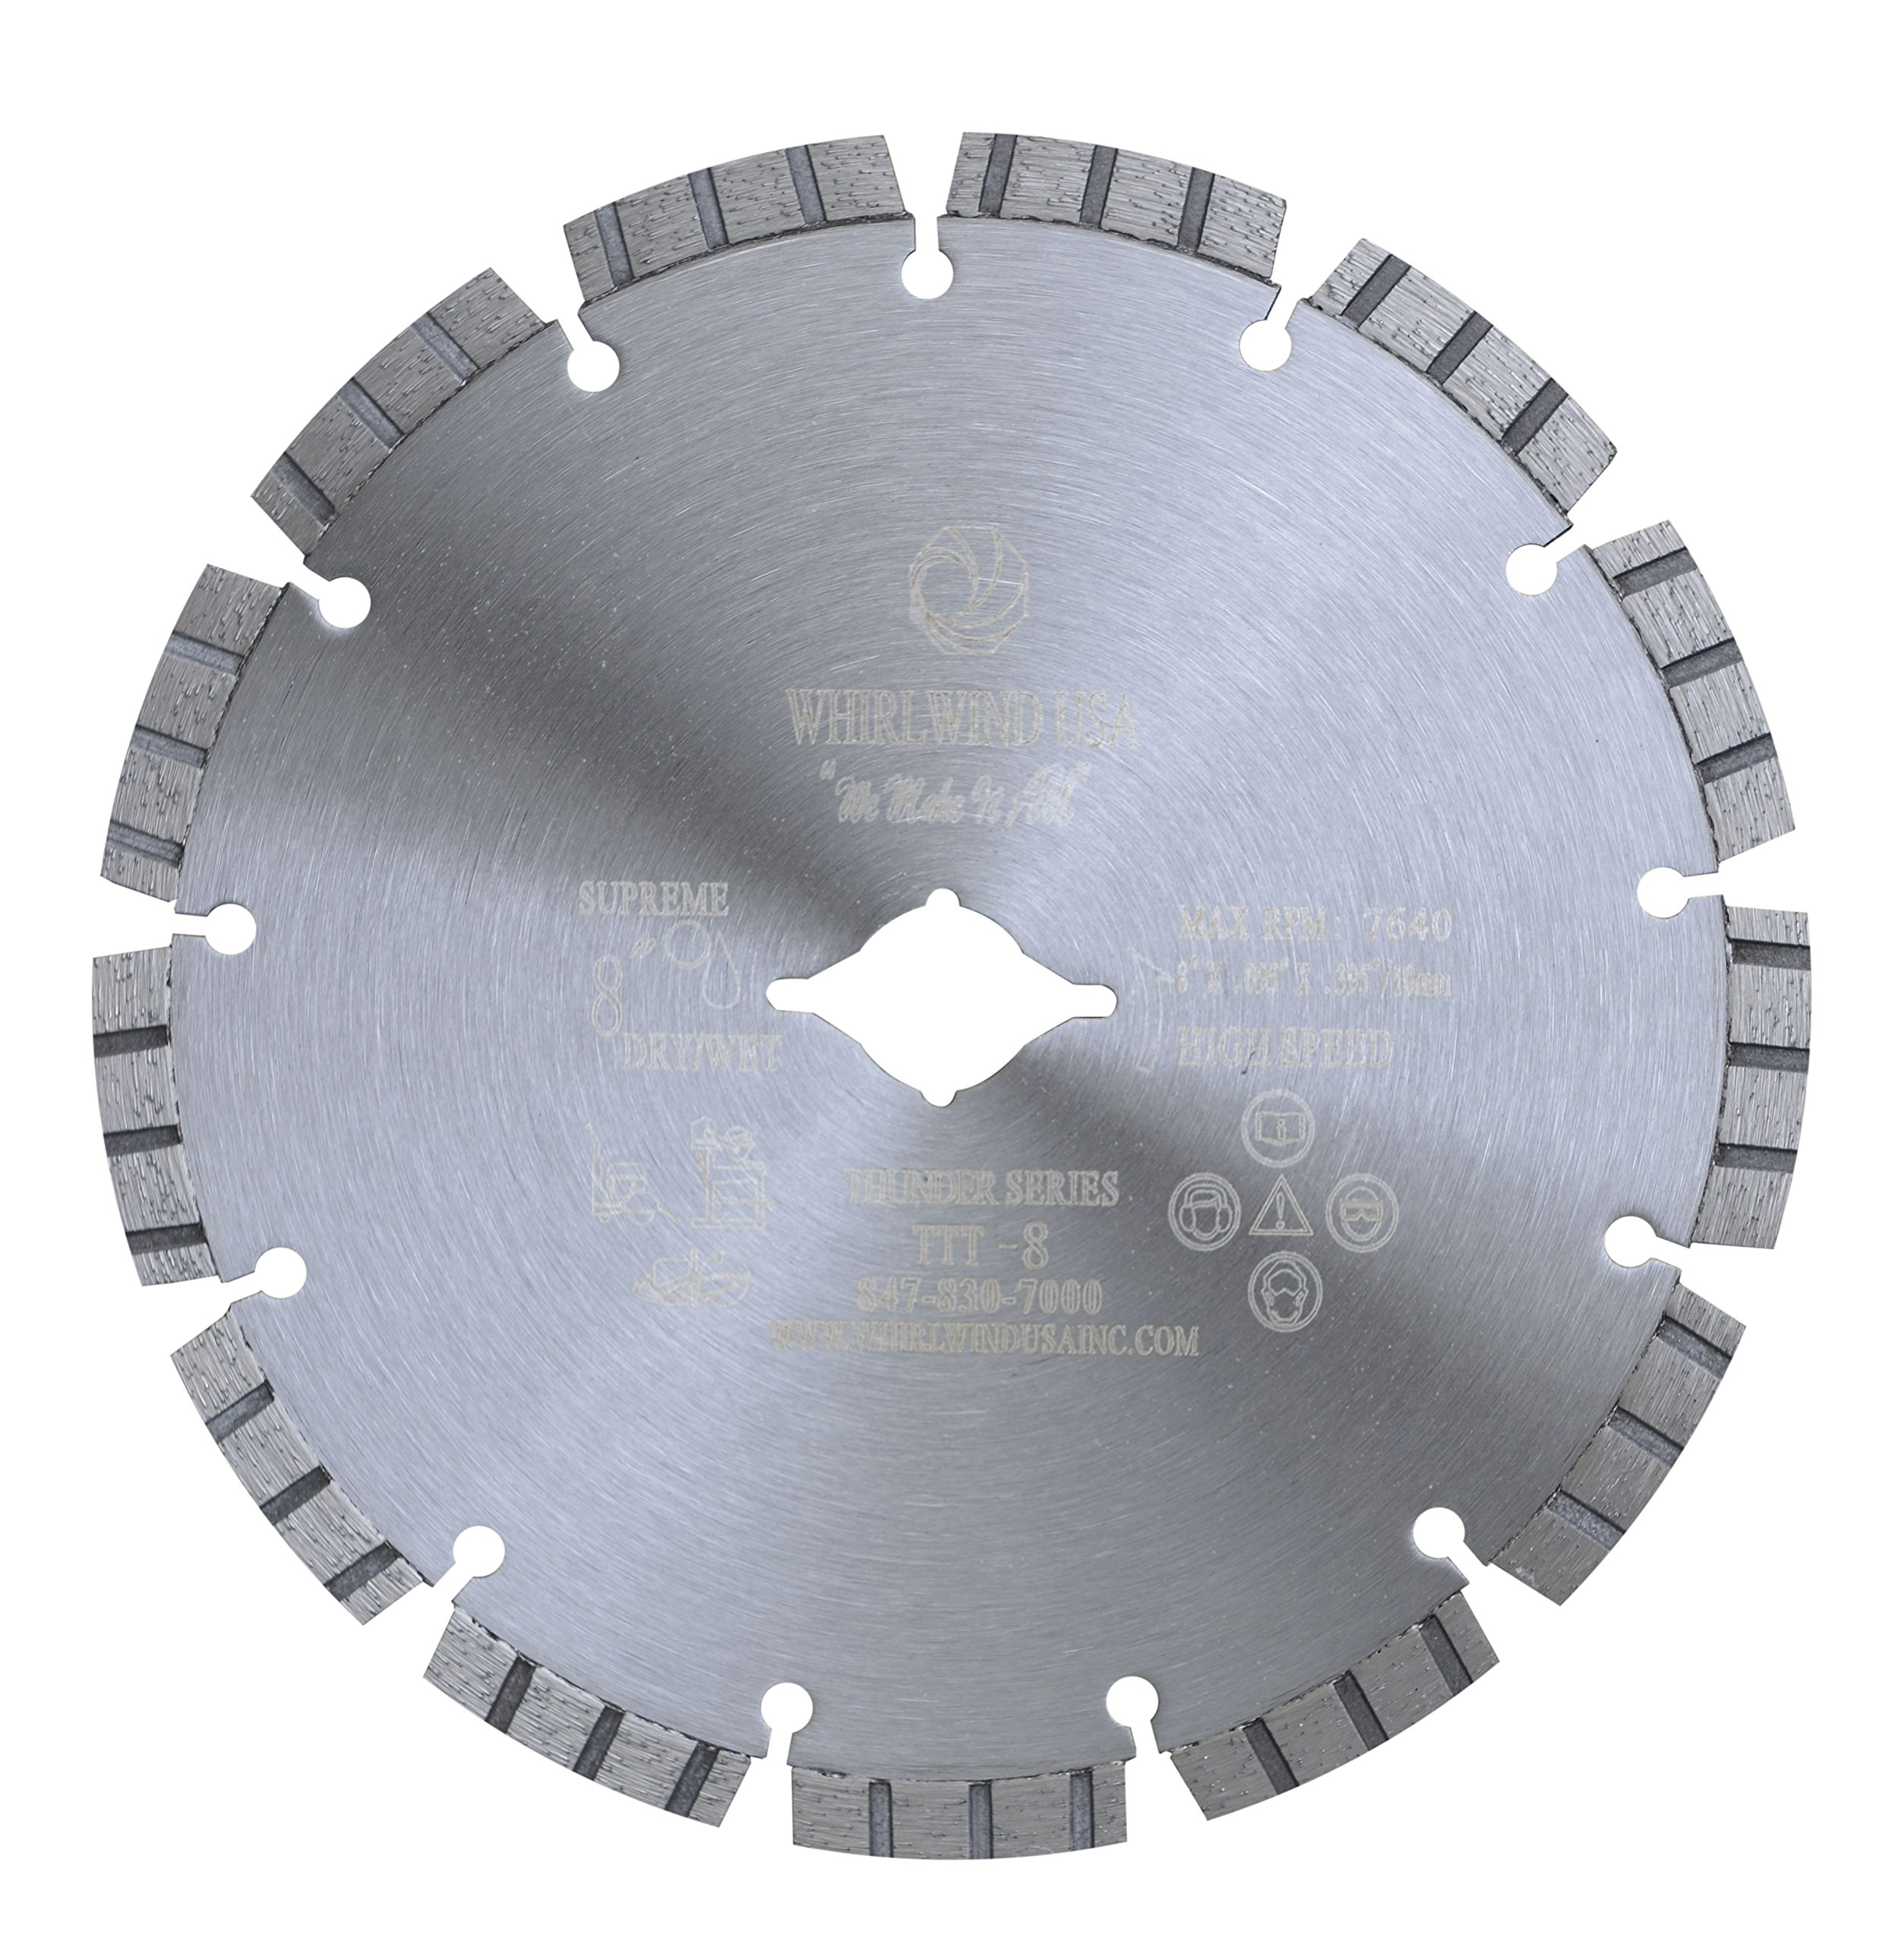 Whirlwind USA TTT 8-inch Laser Welded Dry or Wet Cutting General Purpose Supreme Turbo Power Saw Segmented Diamond Blades for Cutting Concrete and Masonry (Factory Direct Sale) (8'')